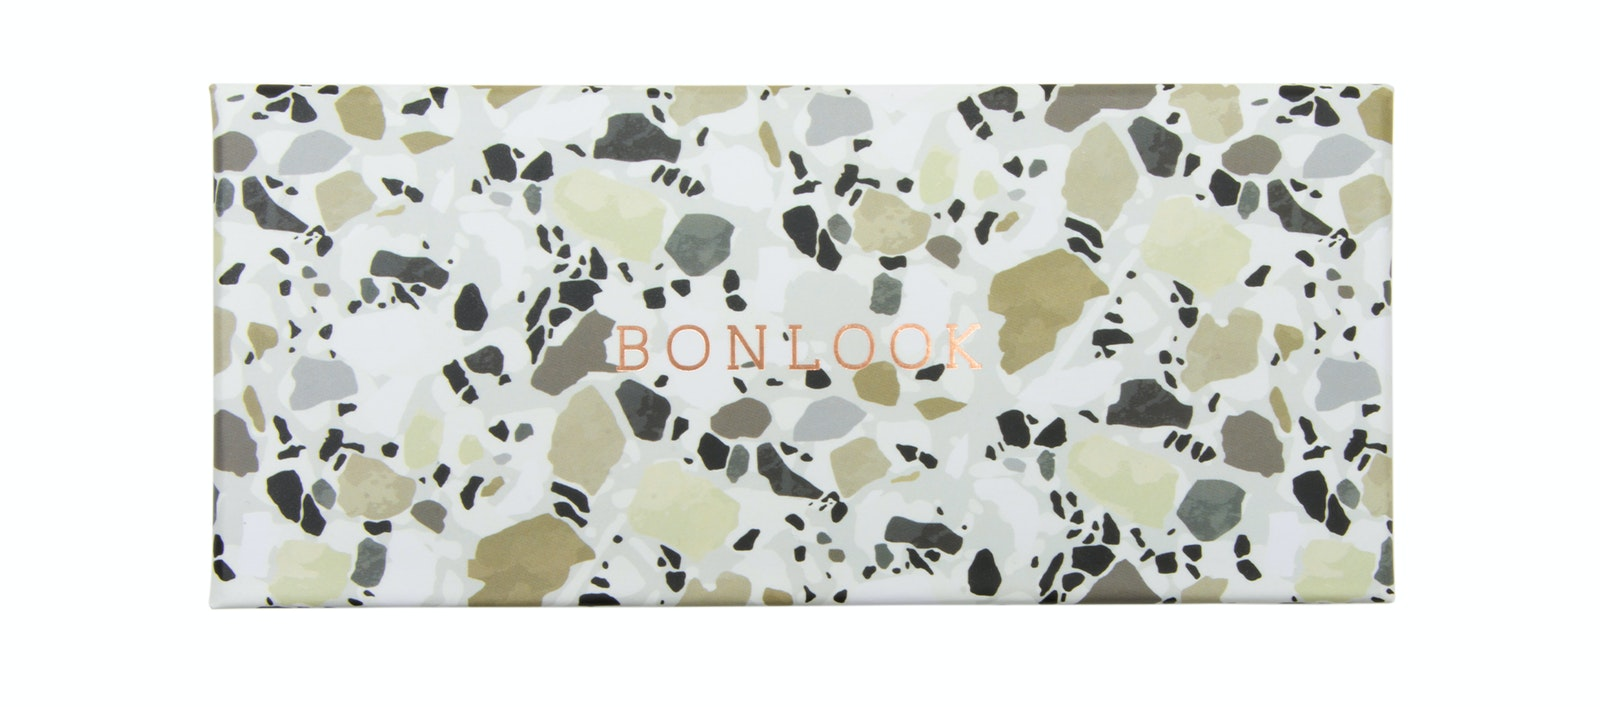 Affordable Fashion Glasses Accessory Men Women Classic Bonlook Case Khaki Terrazzo Tilt